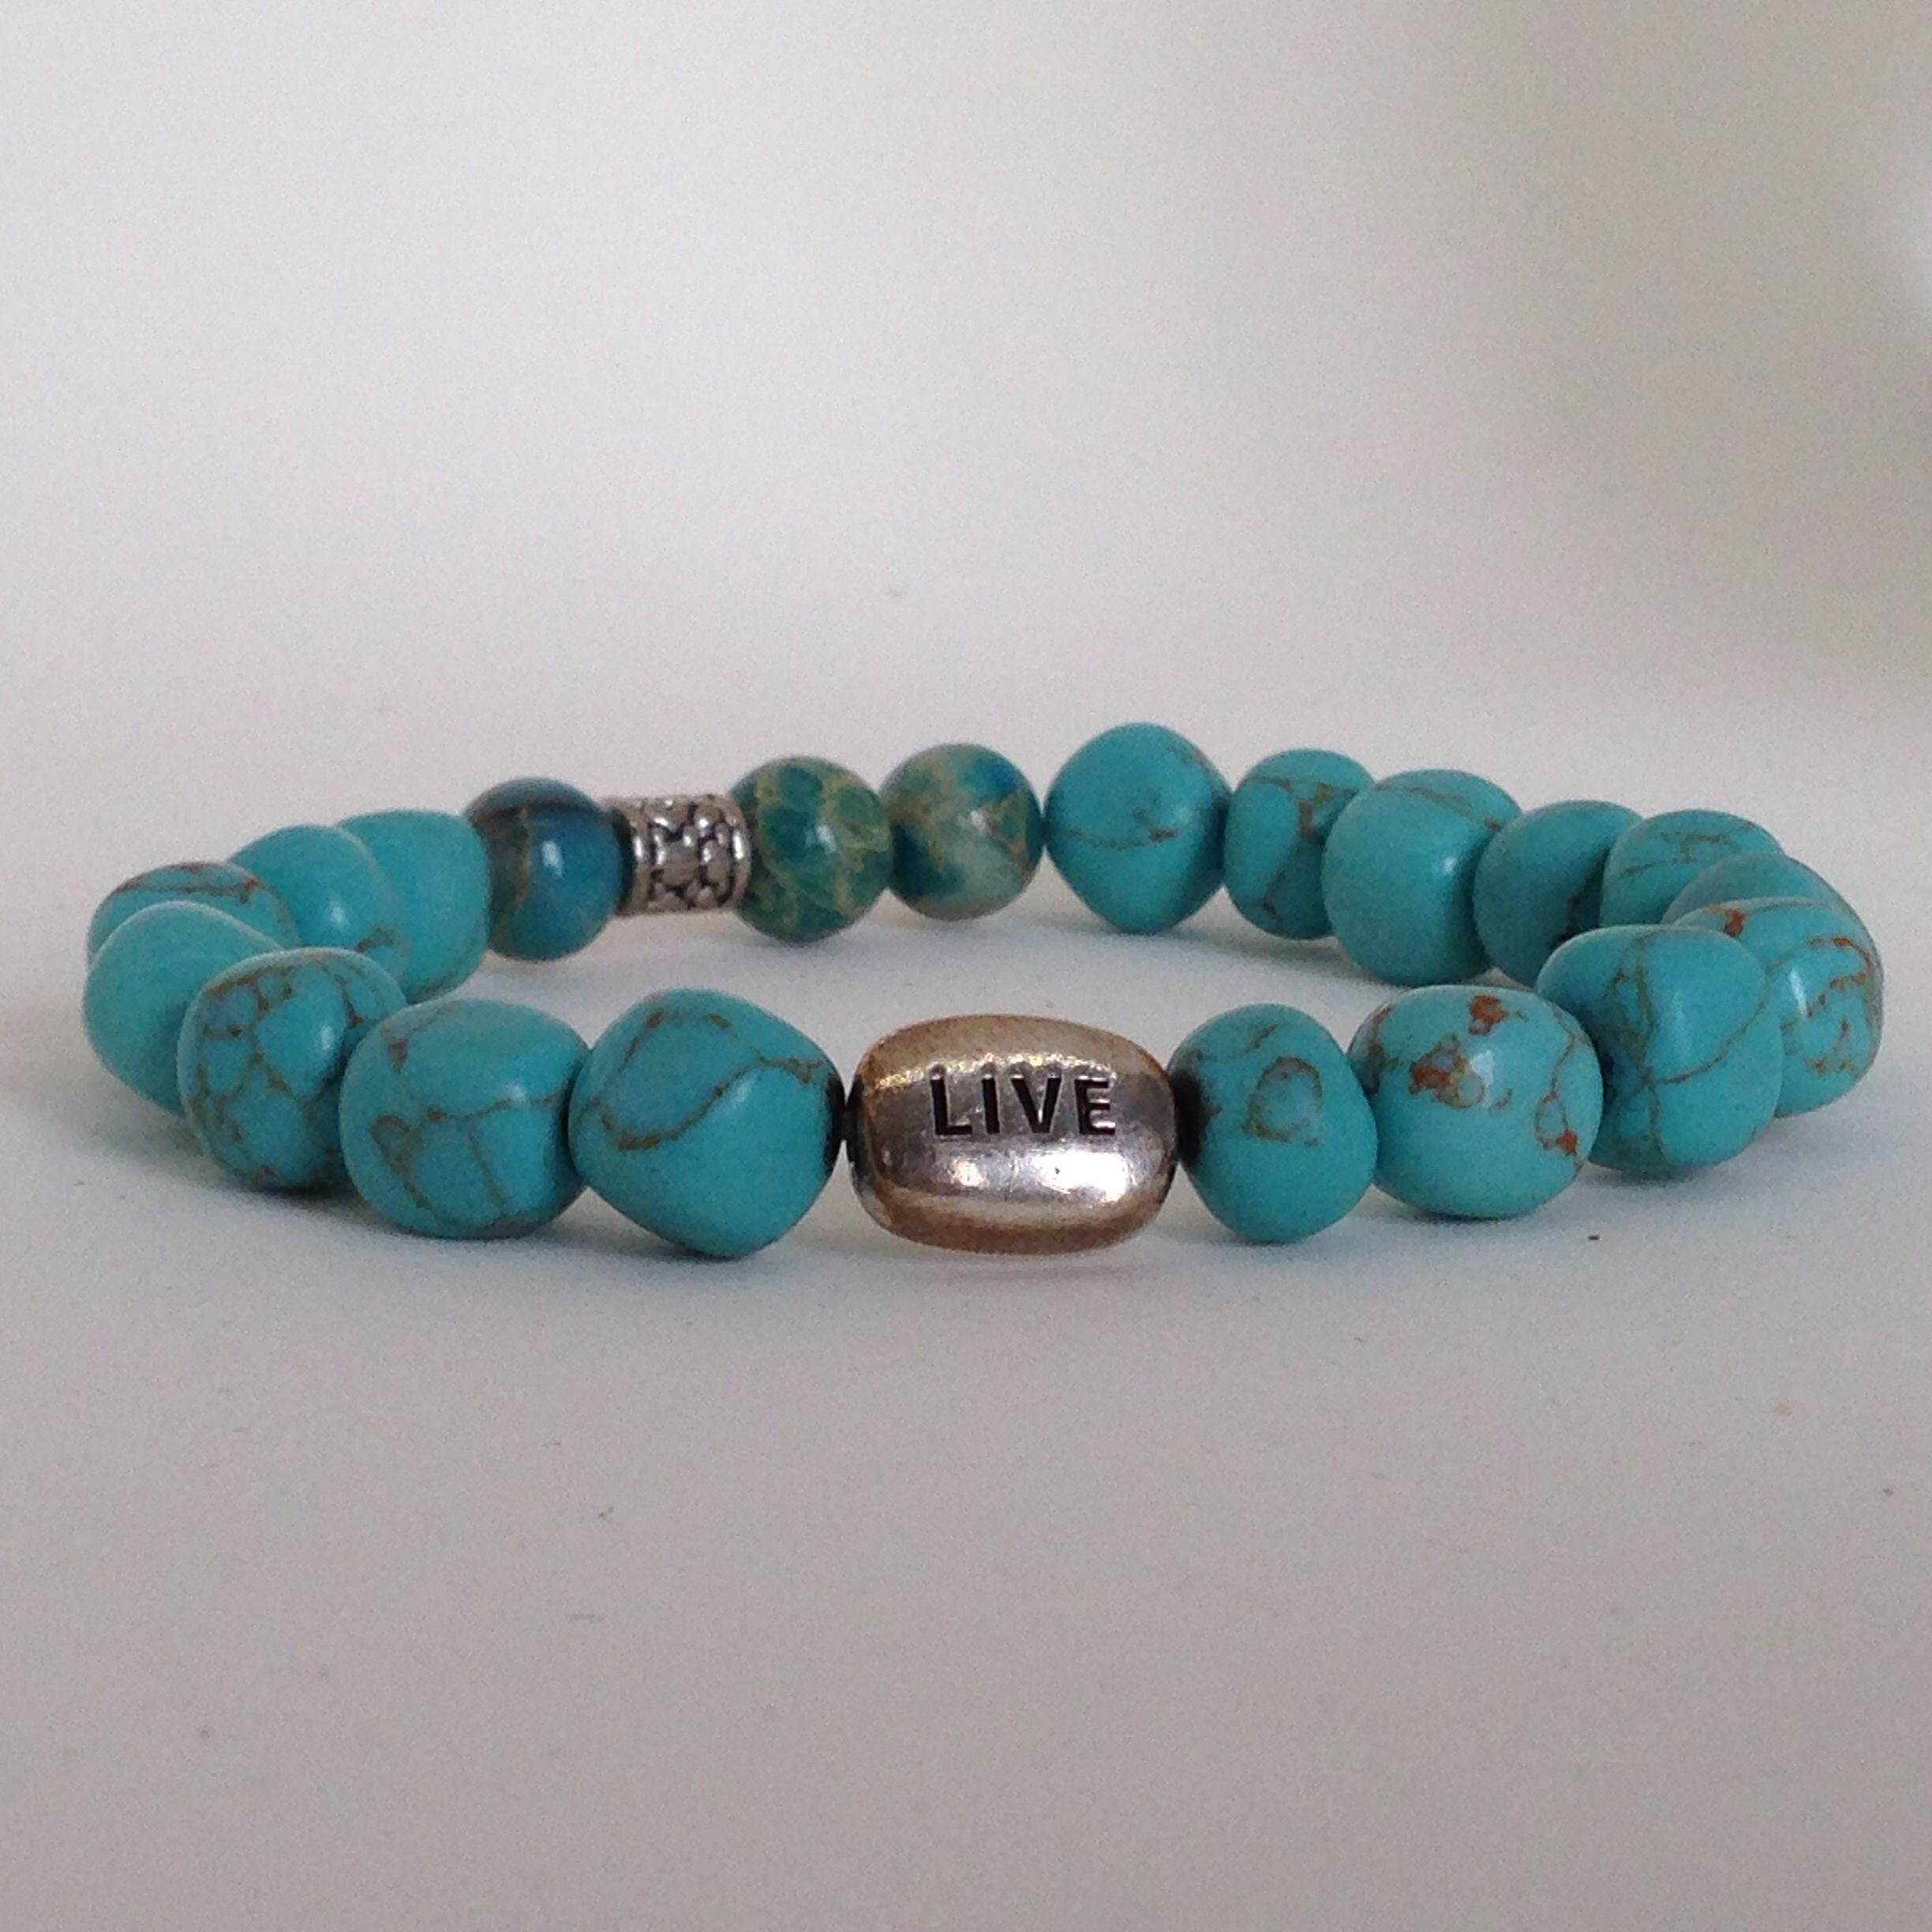 """Live"" turquoise semi precious stone bracelet by Bestowed Beads"